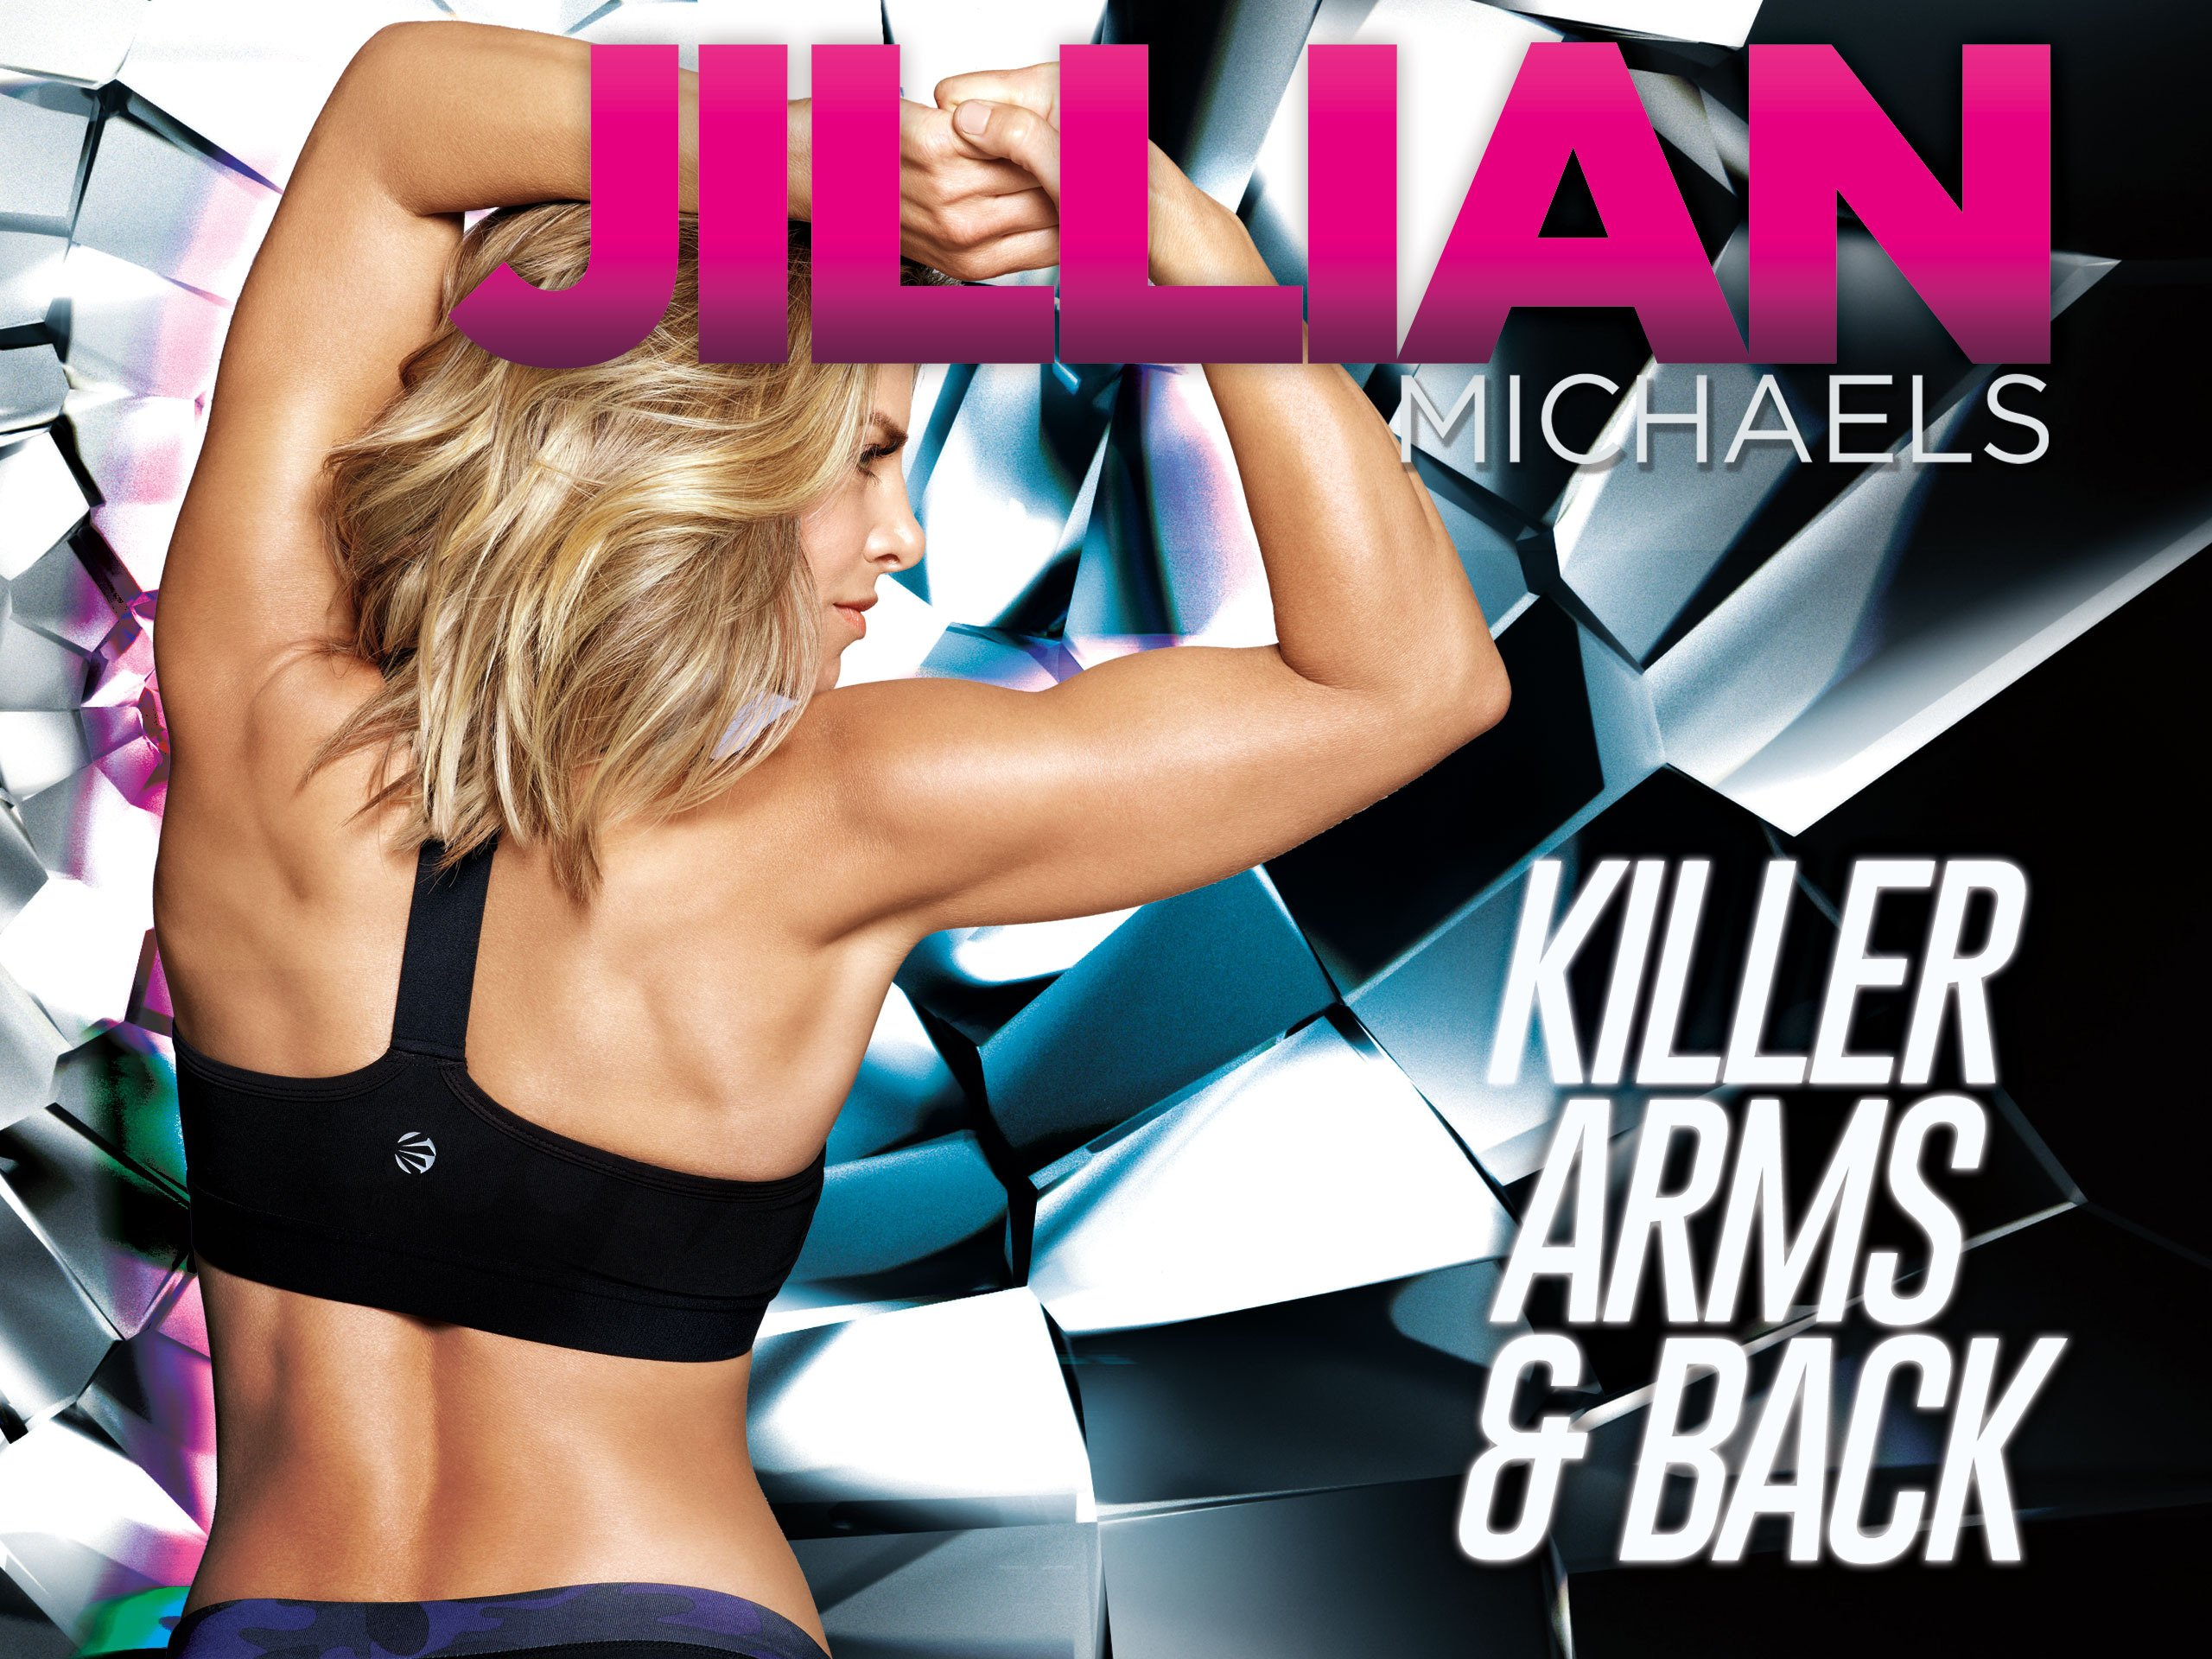 jillian michaels killer abs level 2 torrent